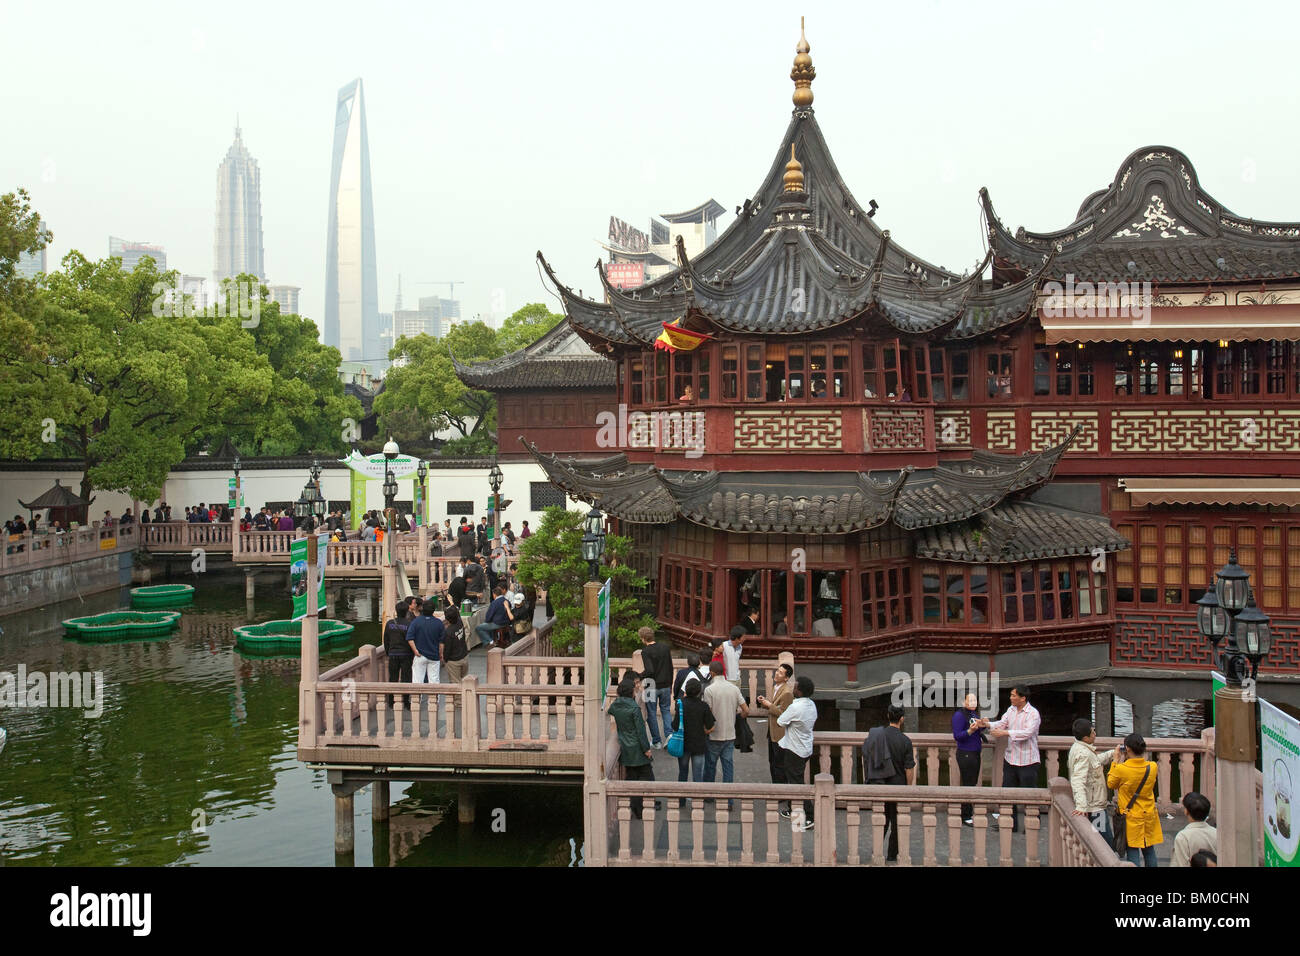 Mid Lake Pavilion Teahouse, Bridge Of Nine Turnings, Mid Lake Pavilion, In  Yu Yuan Gardens, Huxinting Teahouse, Shanghai, China